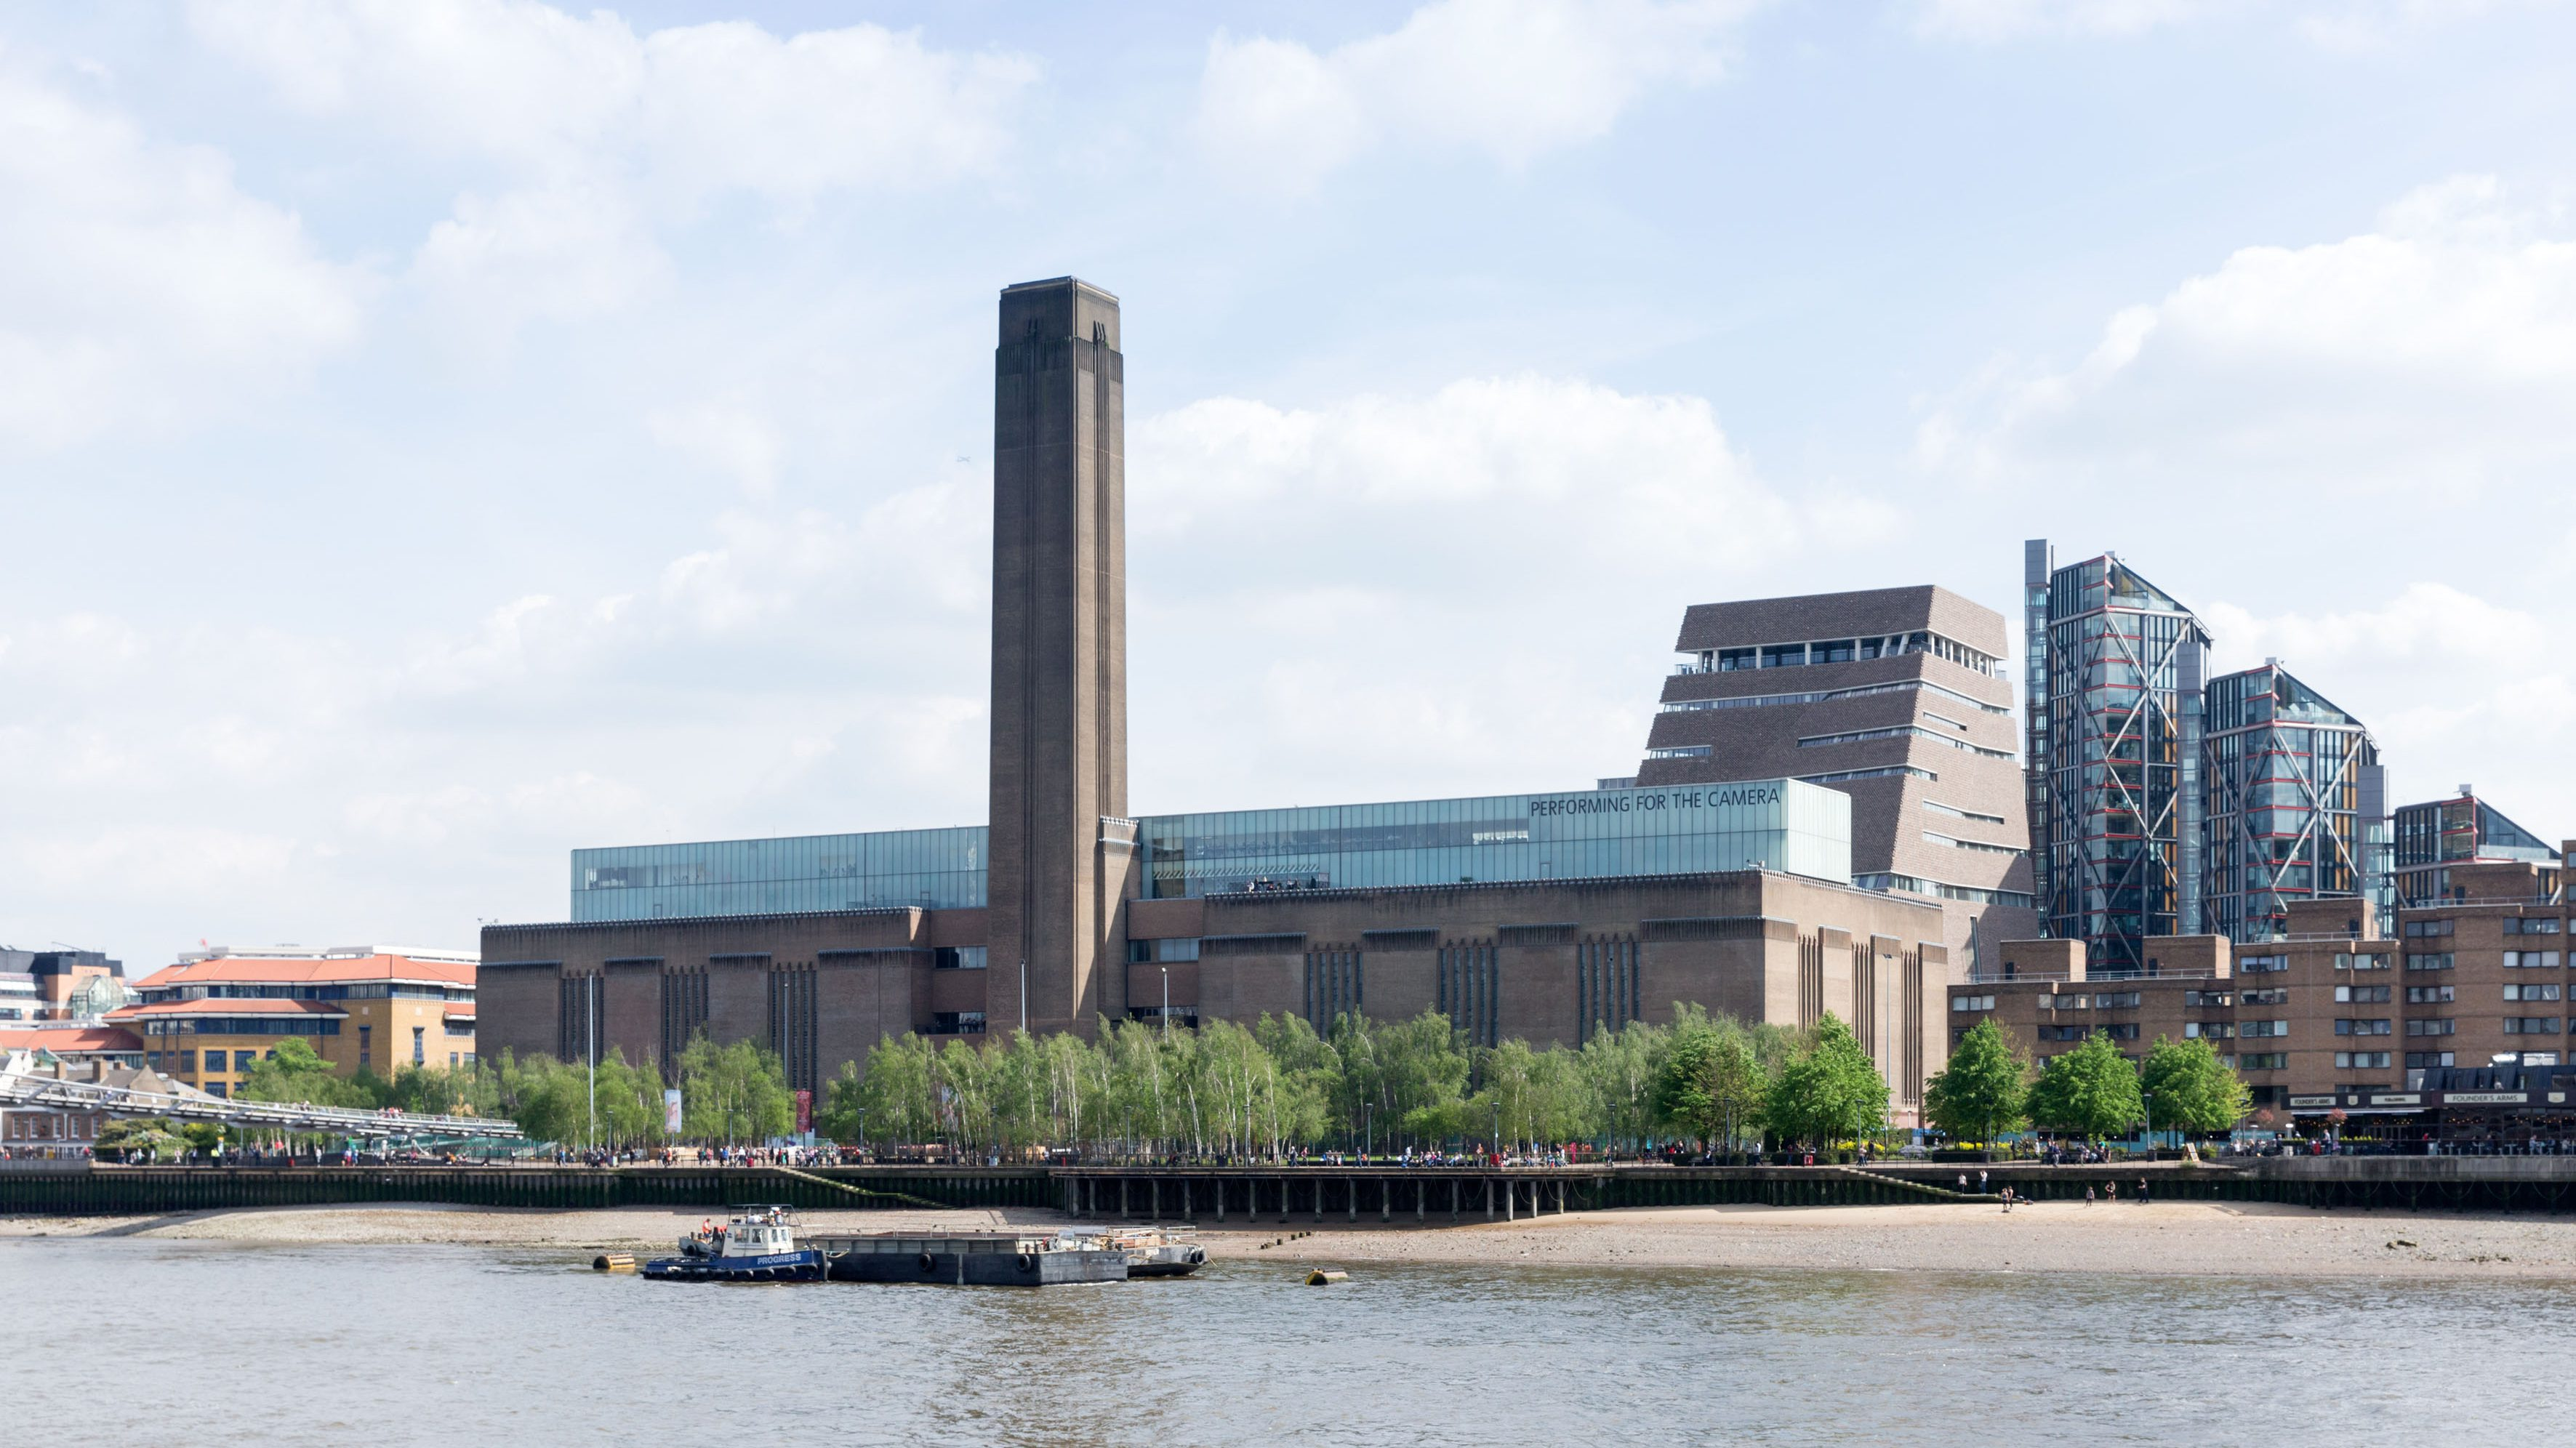 Photo of Tate Modern from across the river